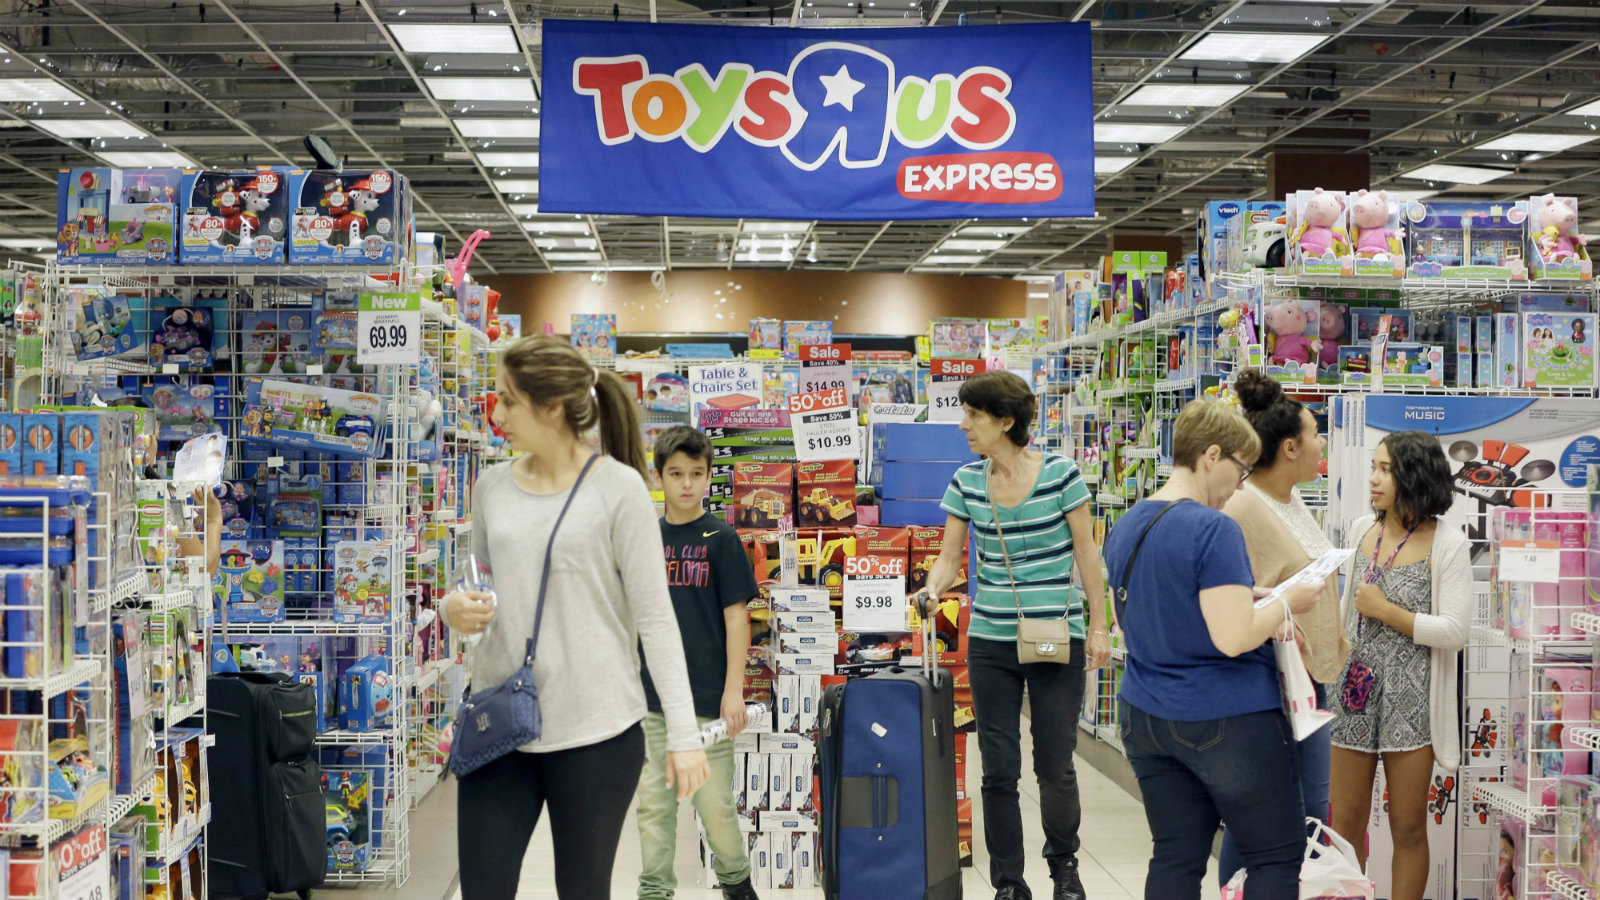 Shoppers shop in a Toys R Us store on Black Friday, Nov. 25, 2016, in Miami. Stores open their doors Friday for what is still one of the busiest days of the year, even as the start of the holiday season edges ever earlier